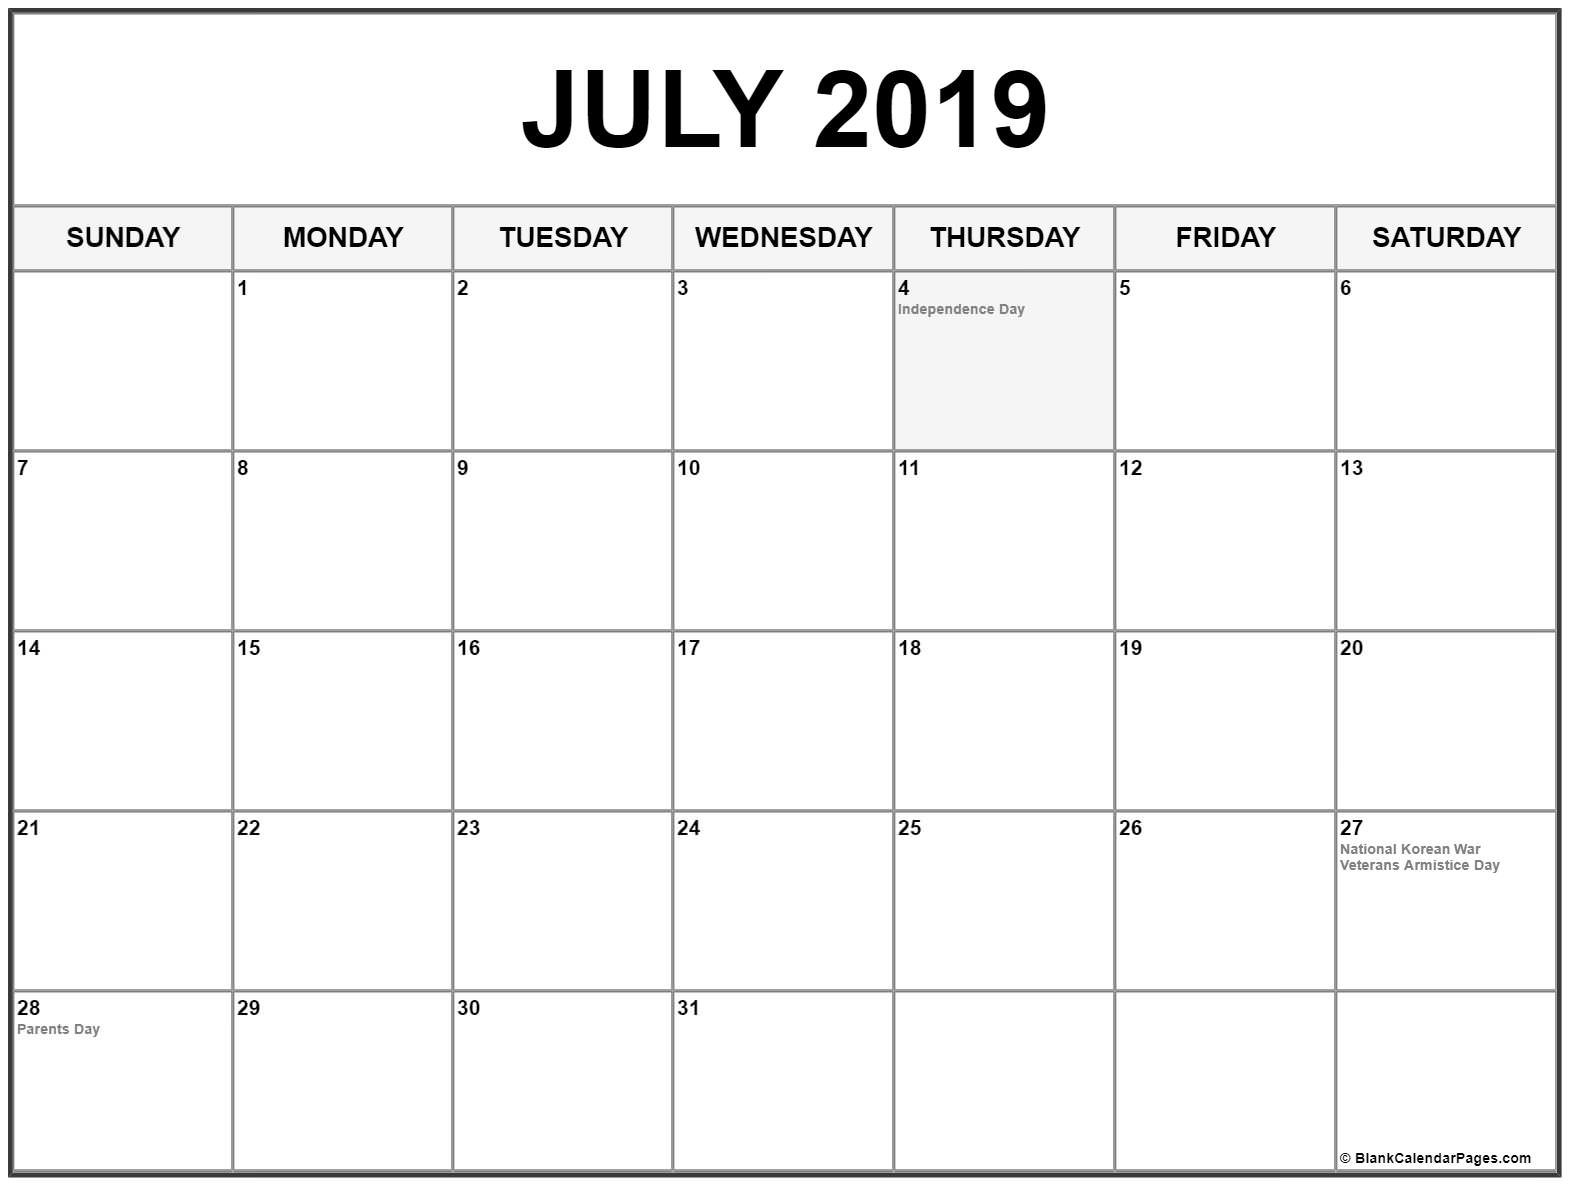 Collection Of July 2019 Calendars With Holidays July 2019 Calendar